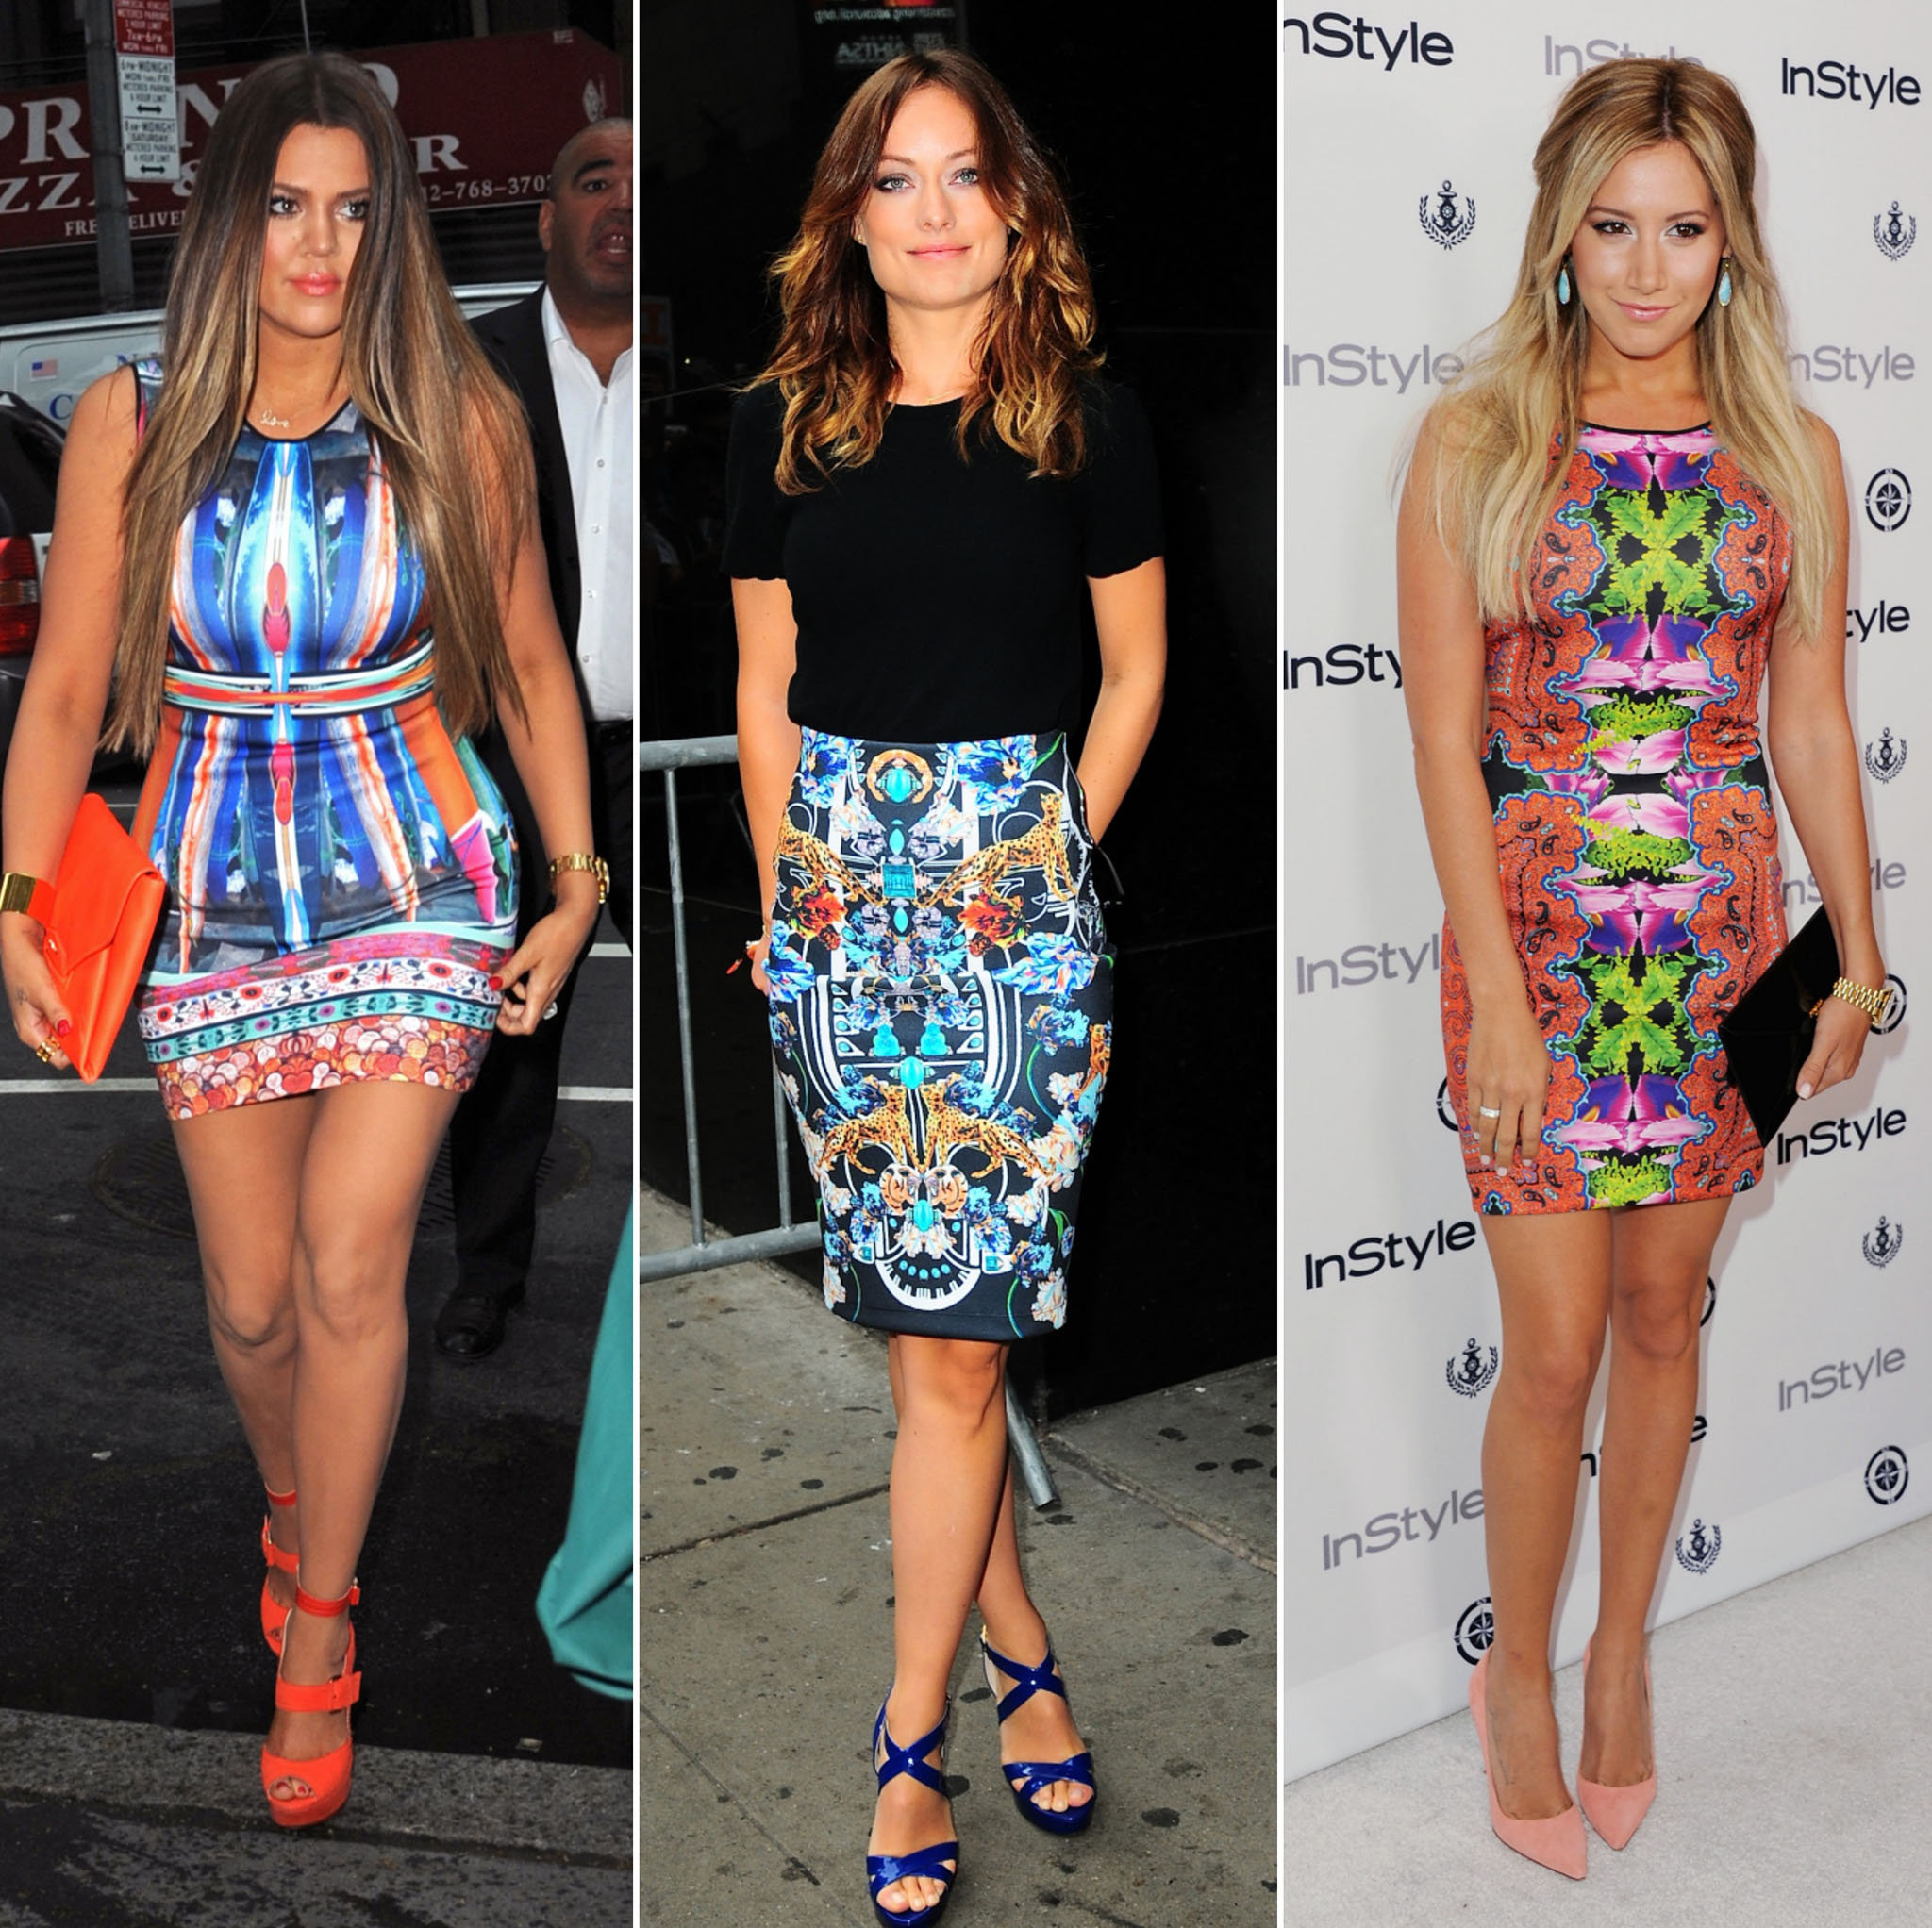 (L-R) Khloe Kardashian, Olivia Wilde, Ashley Tisdale (Getty)